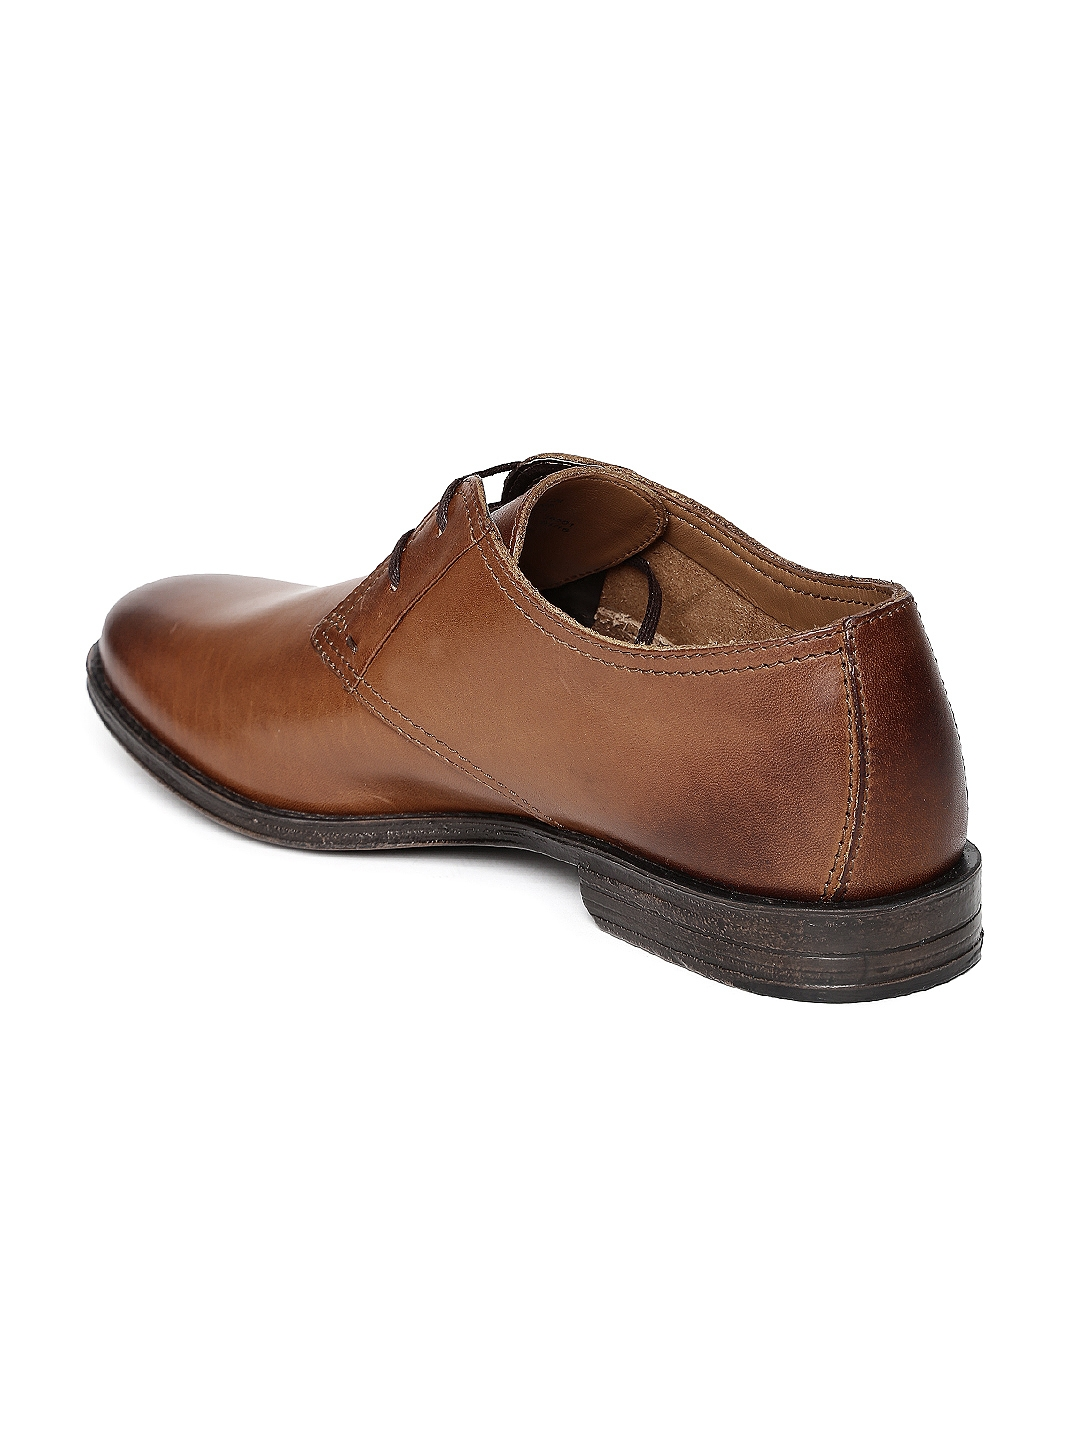 Buy Clarks Men Brown Leather Derby Formal Shoes - Formal Shoes for ... 7ef6c2abcdfe